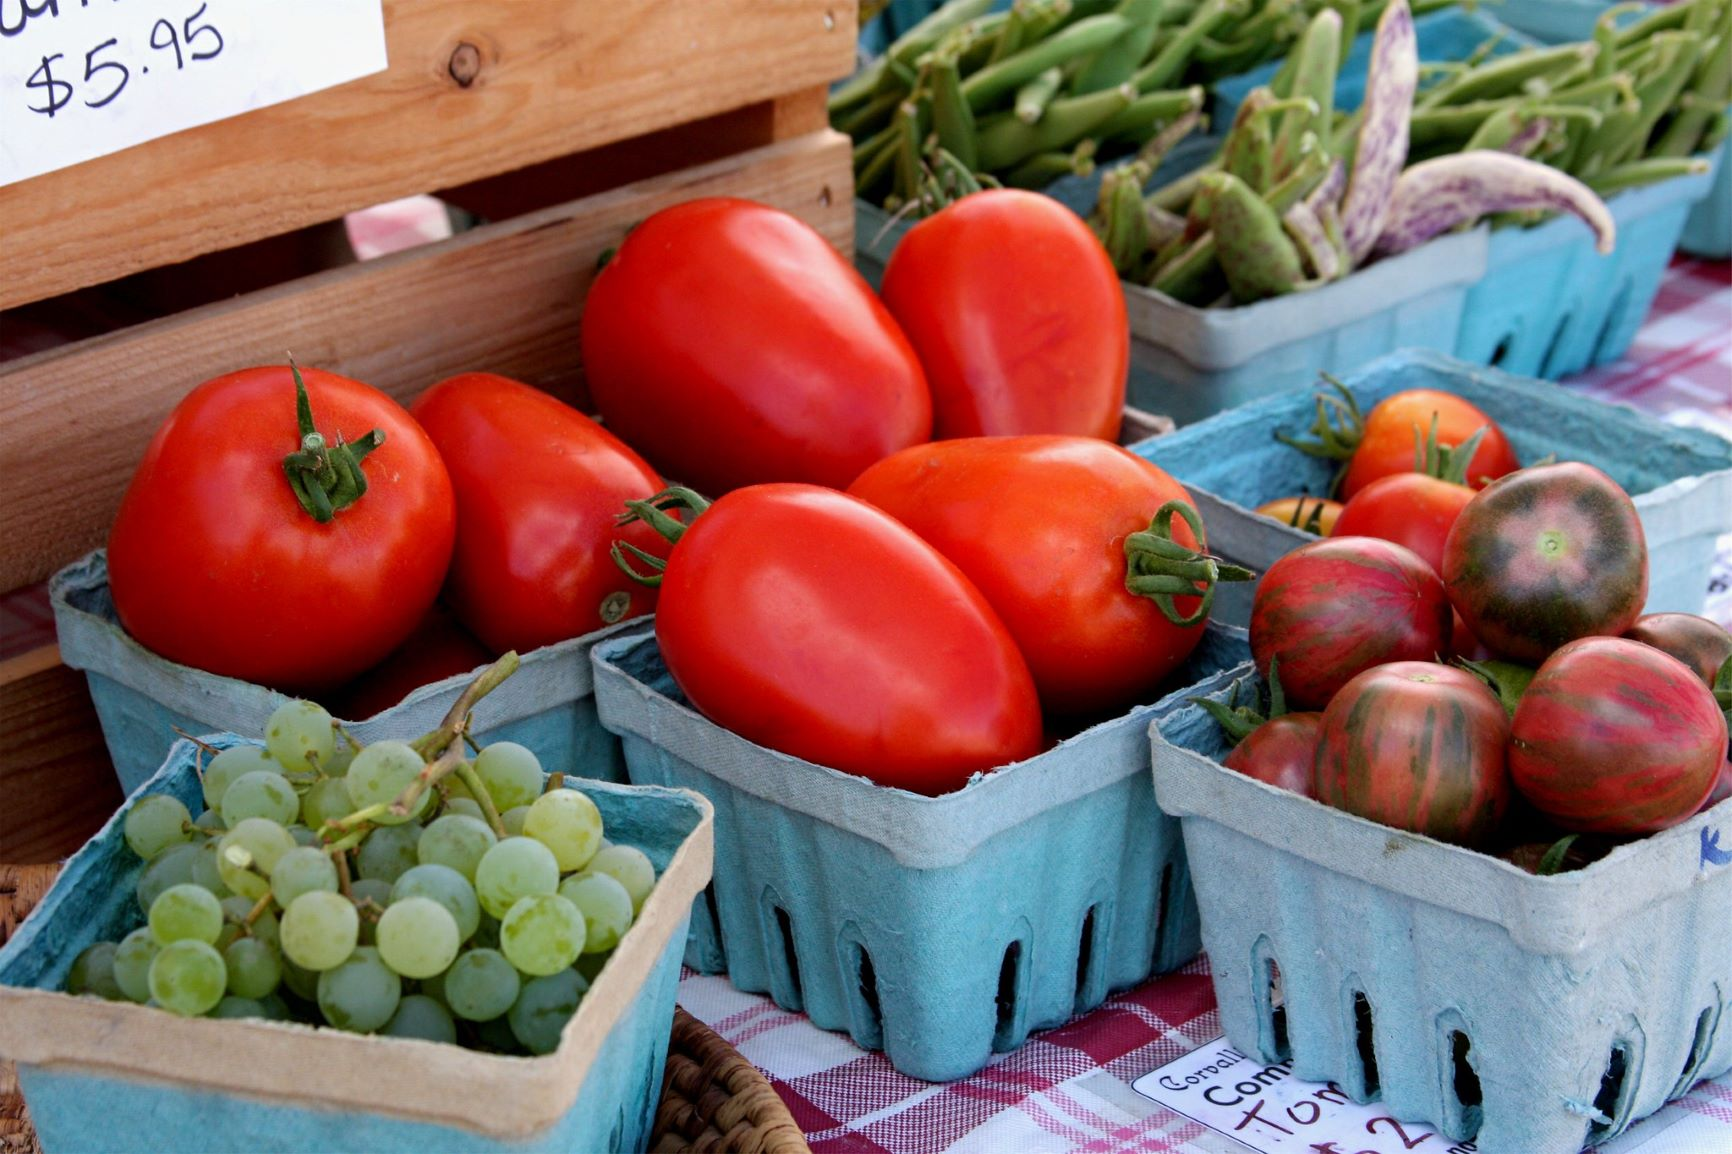 Photo of vegetables and fruit at outdoor market.